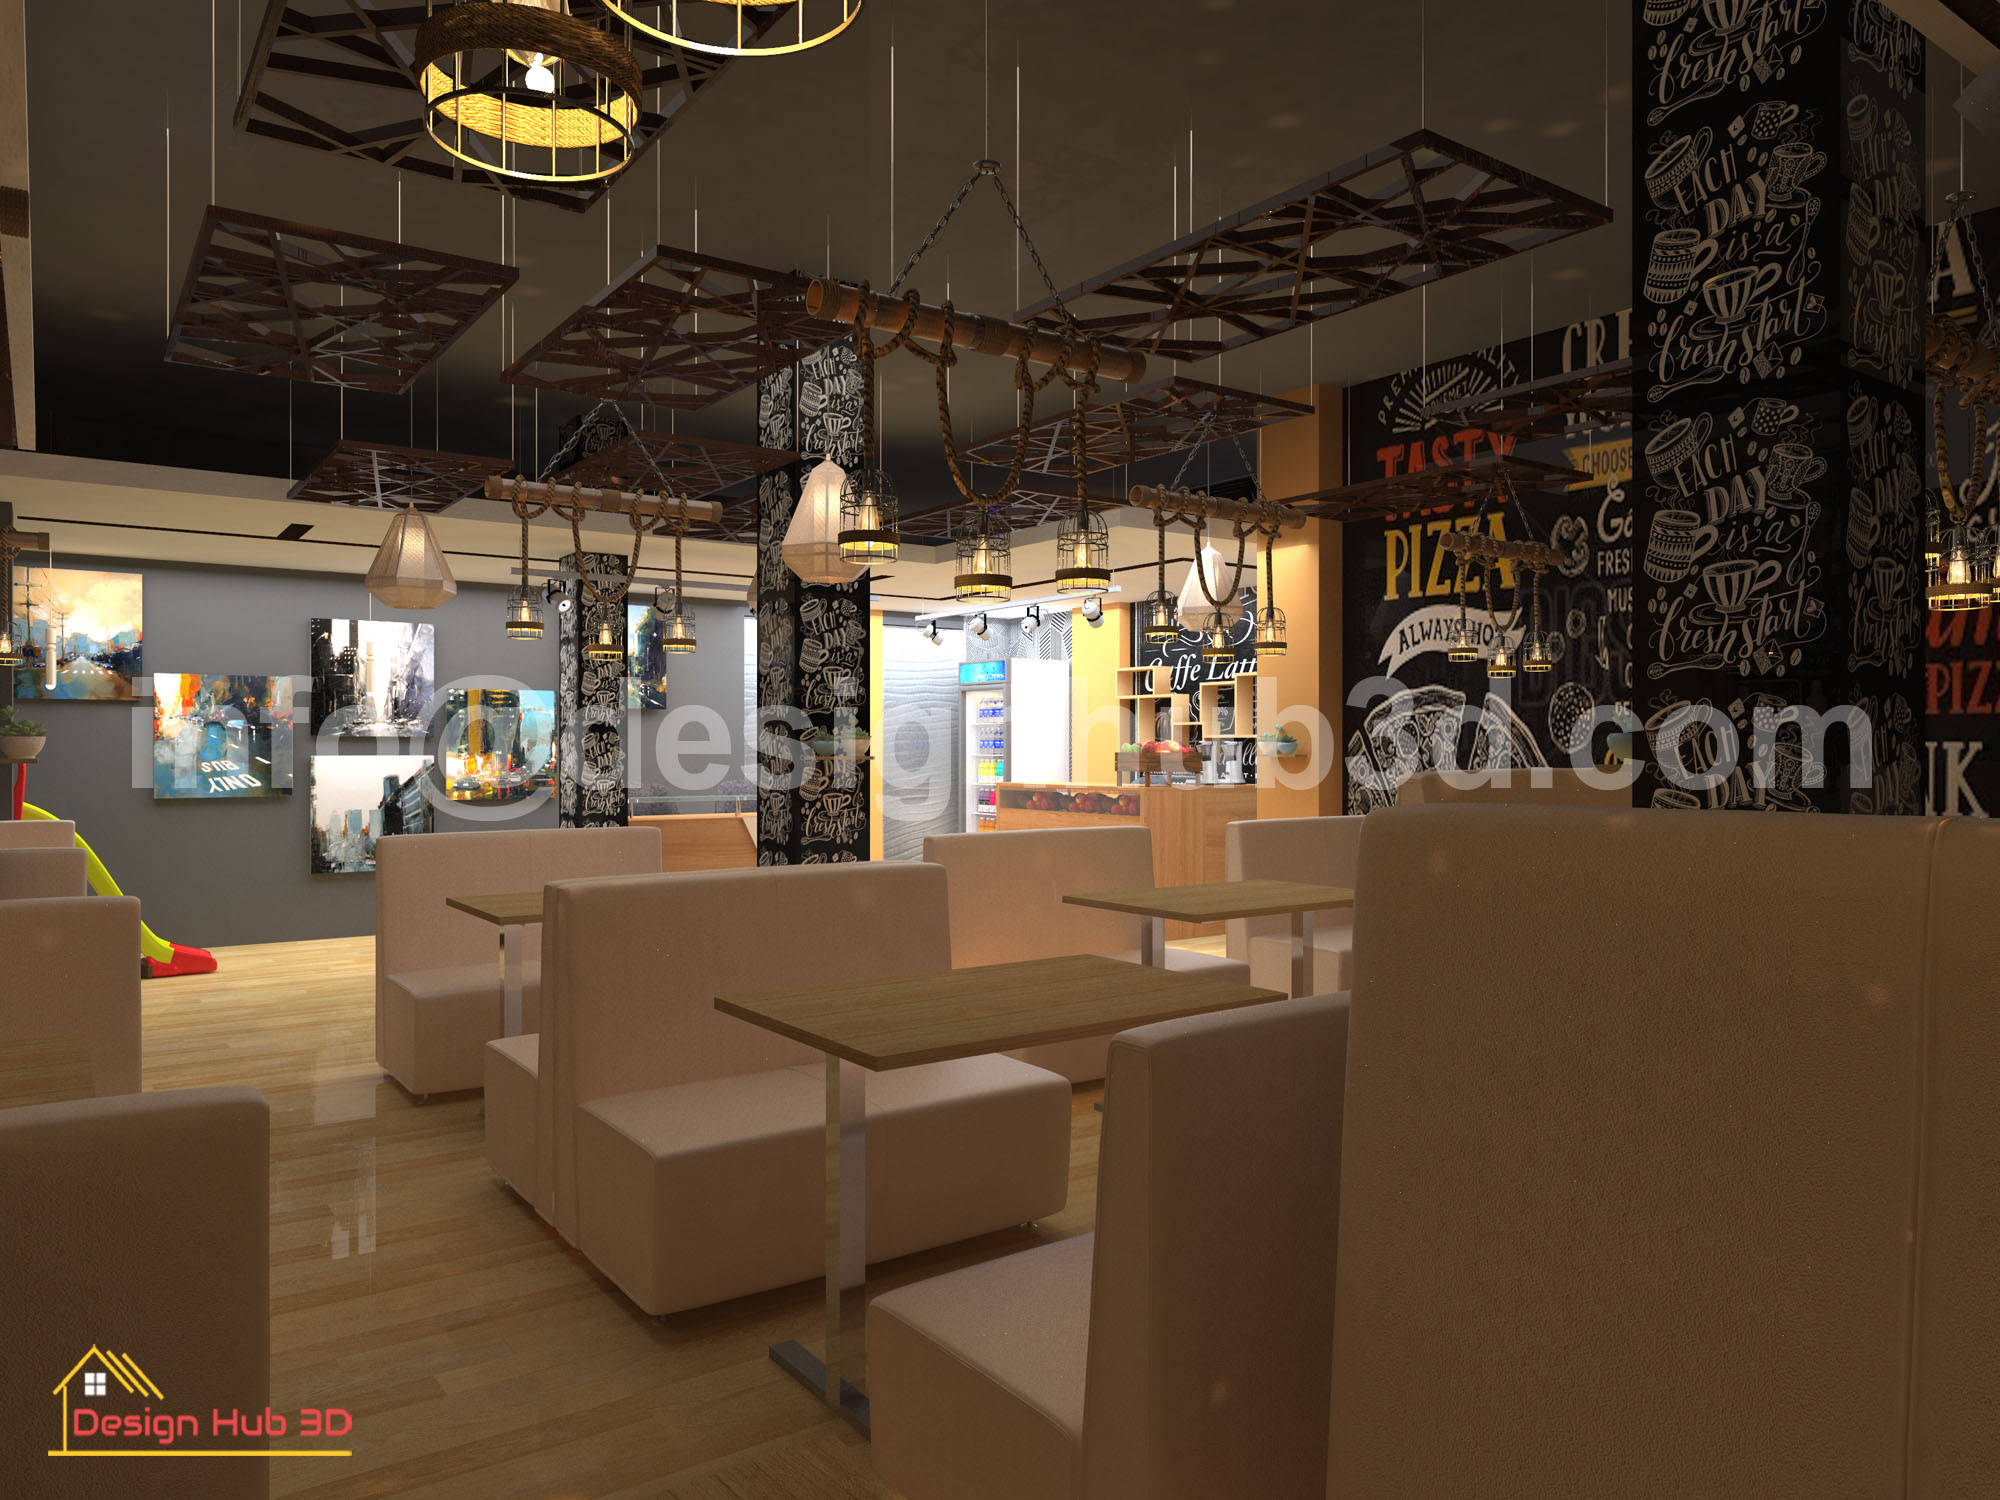 DesignHub 3D-Restaurant Top view, Restaurant interior, Restaurant Decor